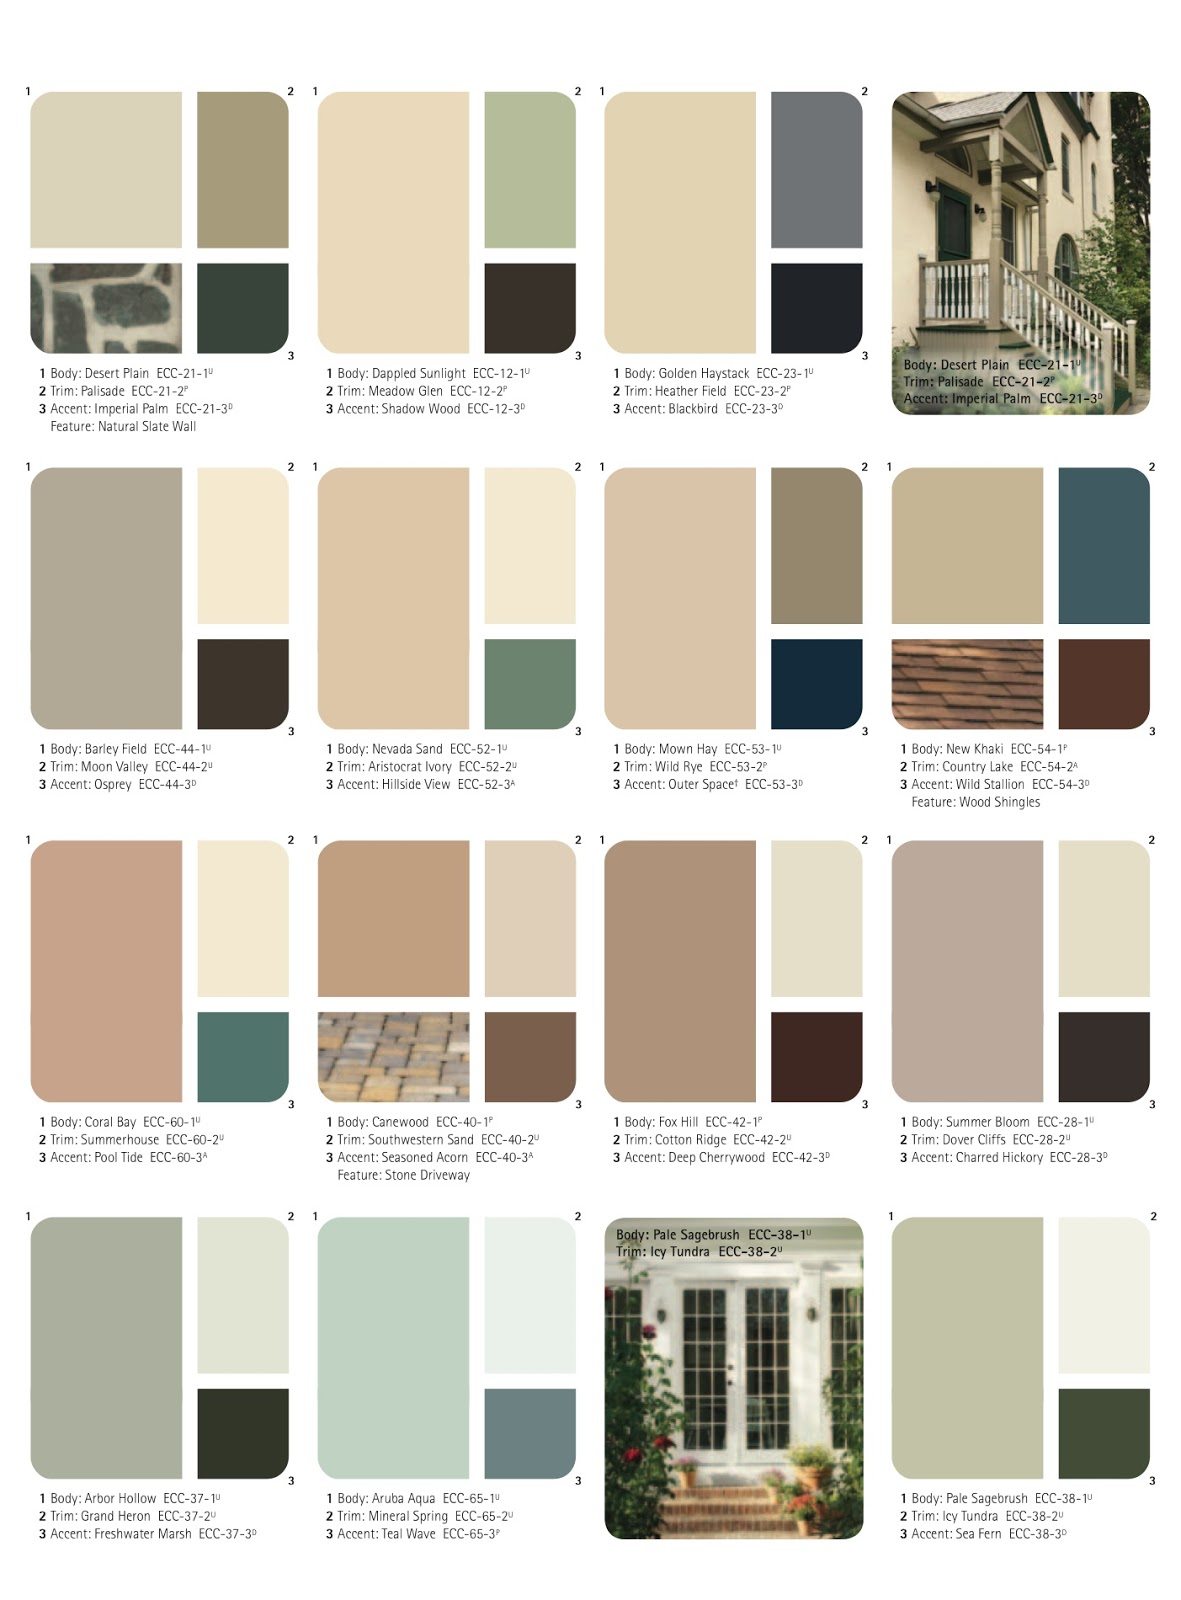 Home depot house paint home painting ideas Color combinations painting